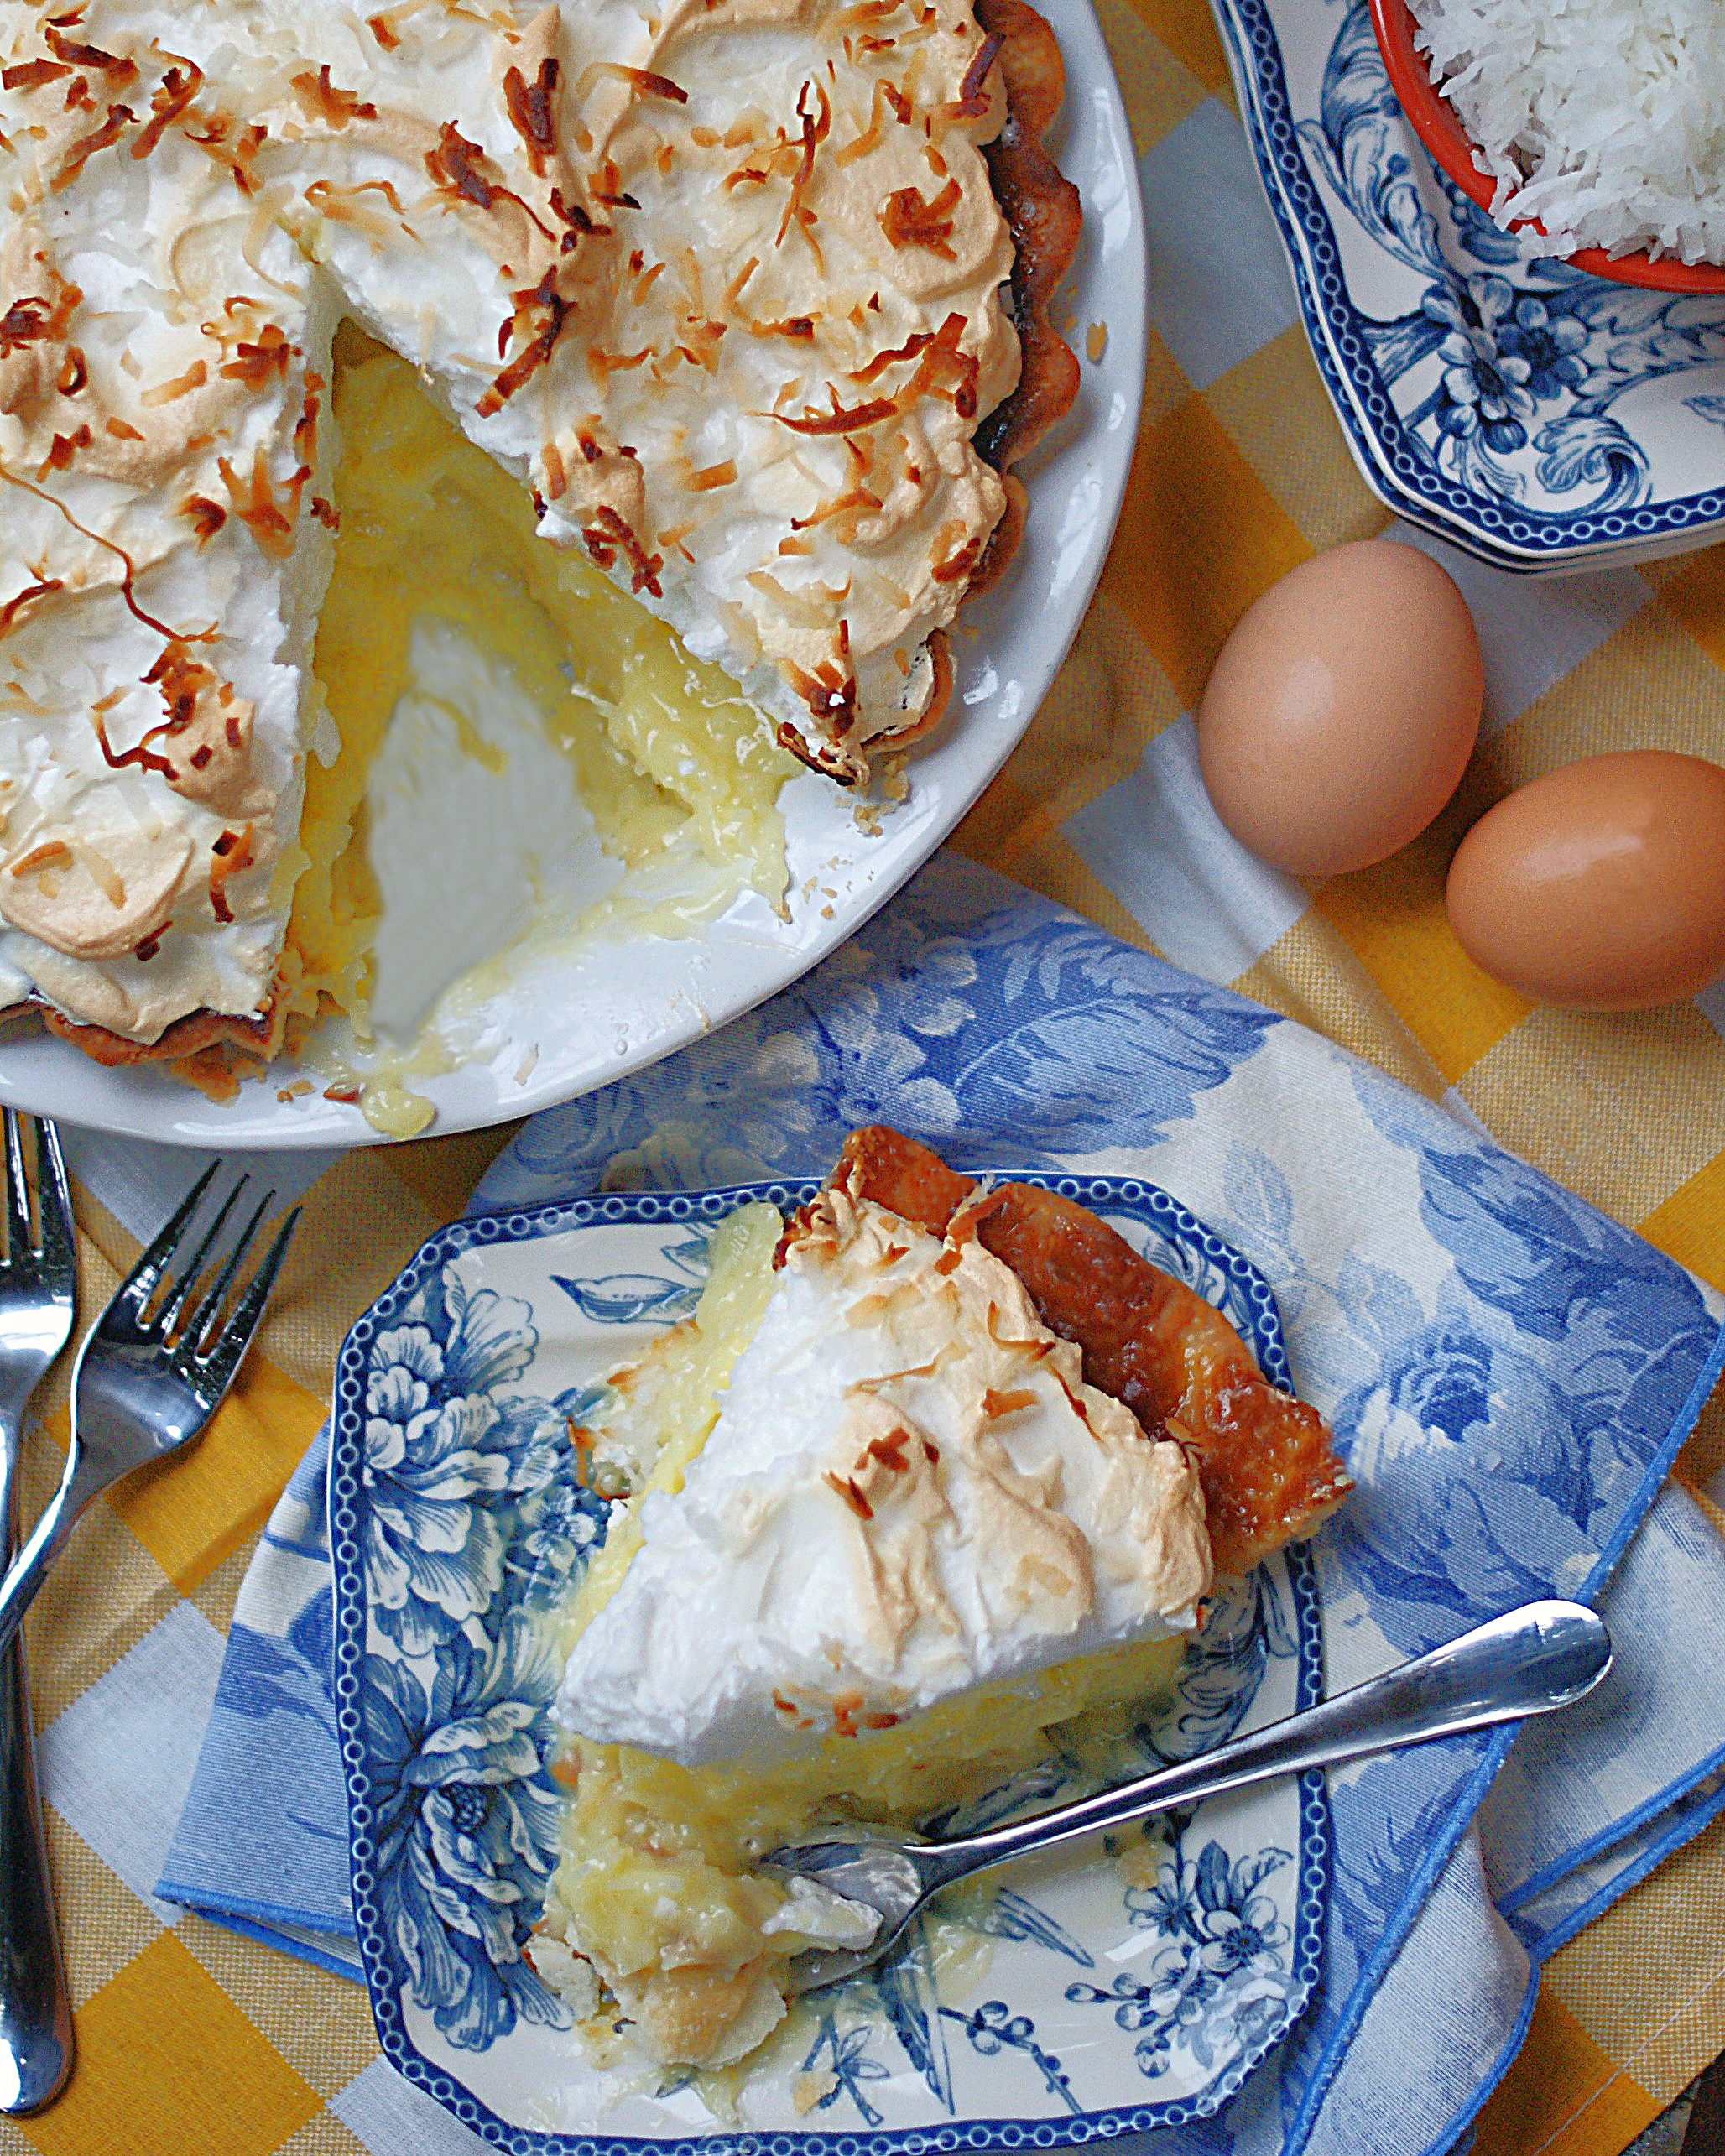 An overhead view of an old fashioned coconut pie with a meringue sliced.